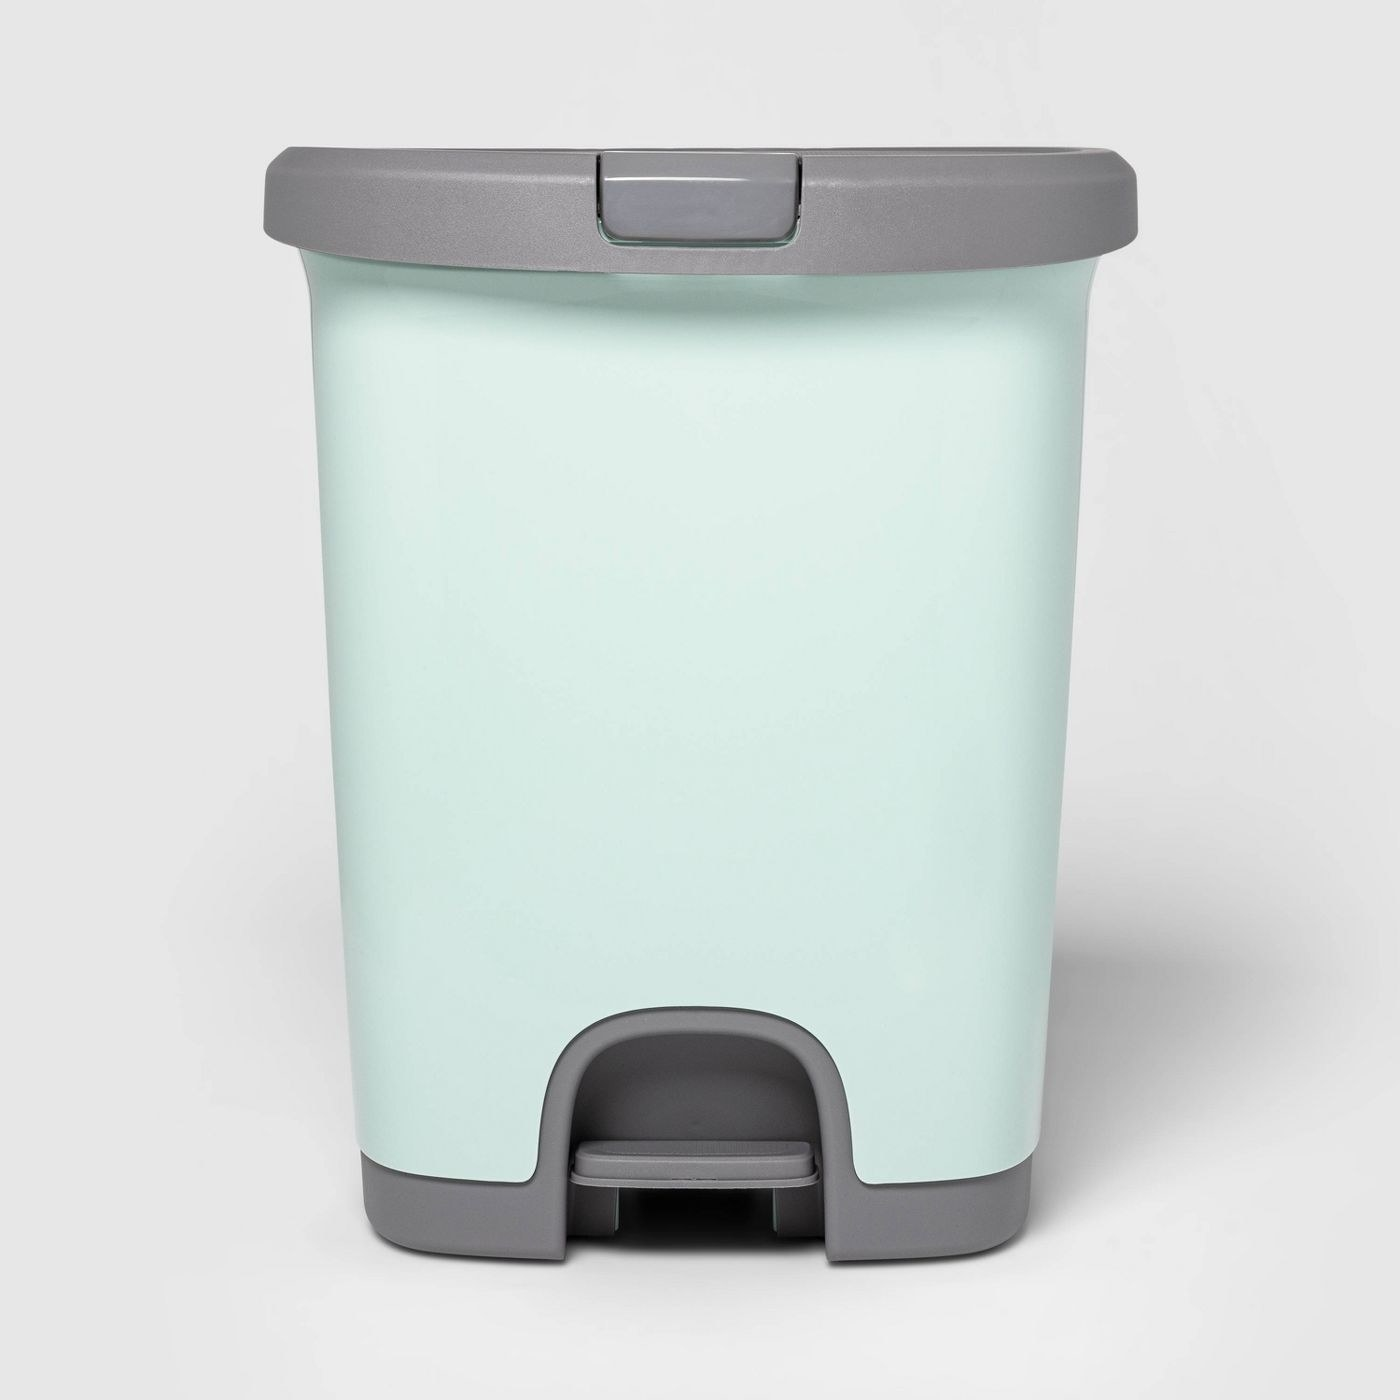 The mint green trash can